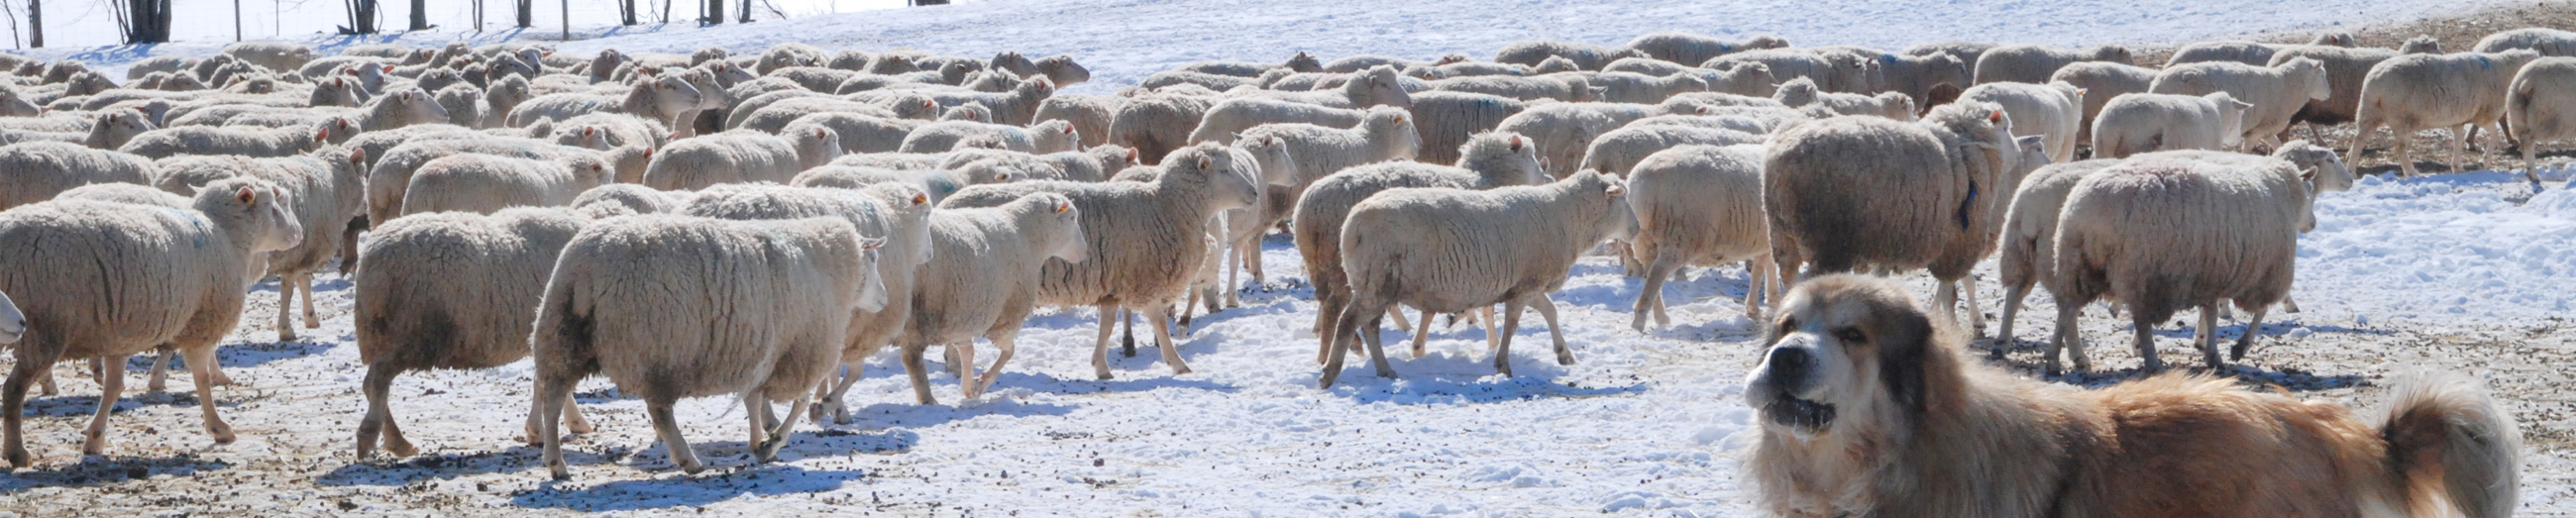 Canadian sheep in snow